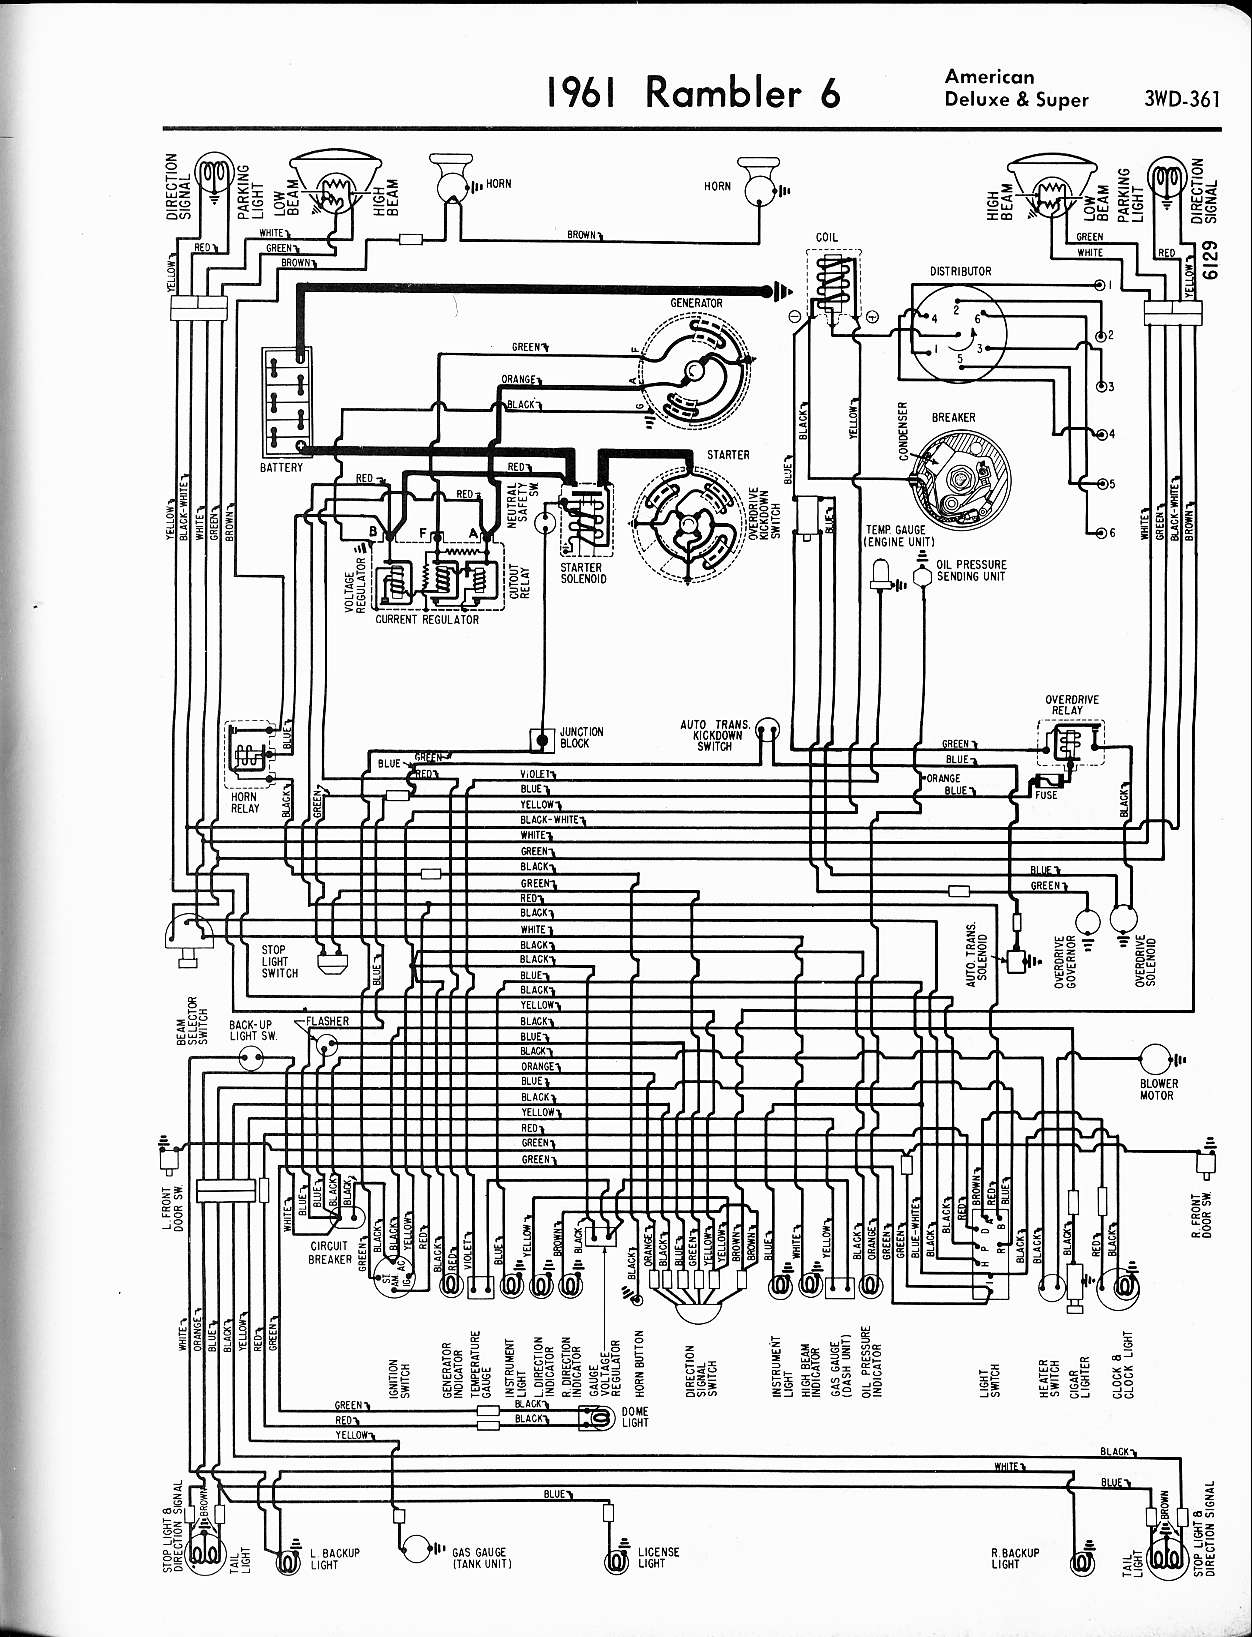 hight resolution of 1961 rambler 6 american deluxe super rambler wiring diagrams